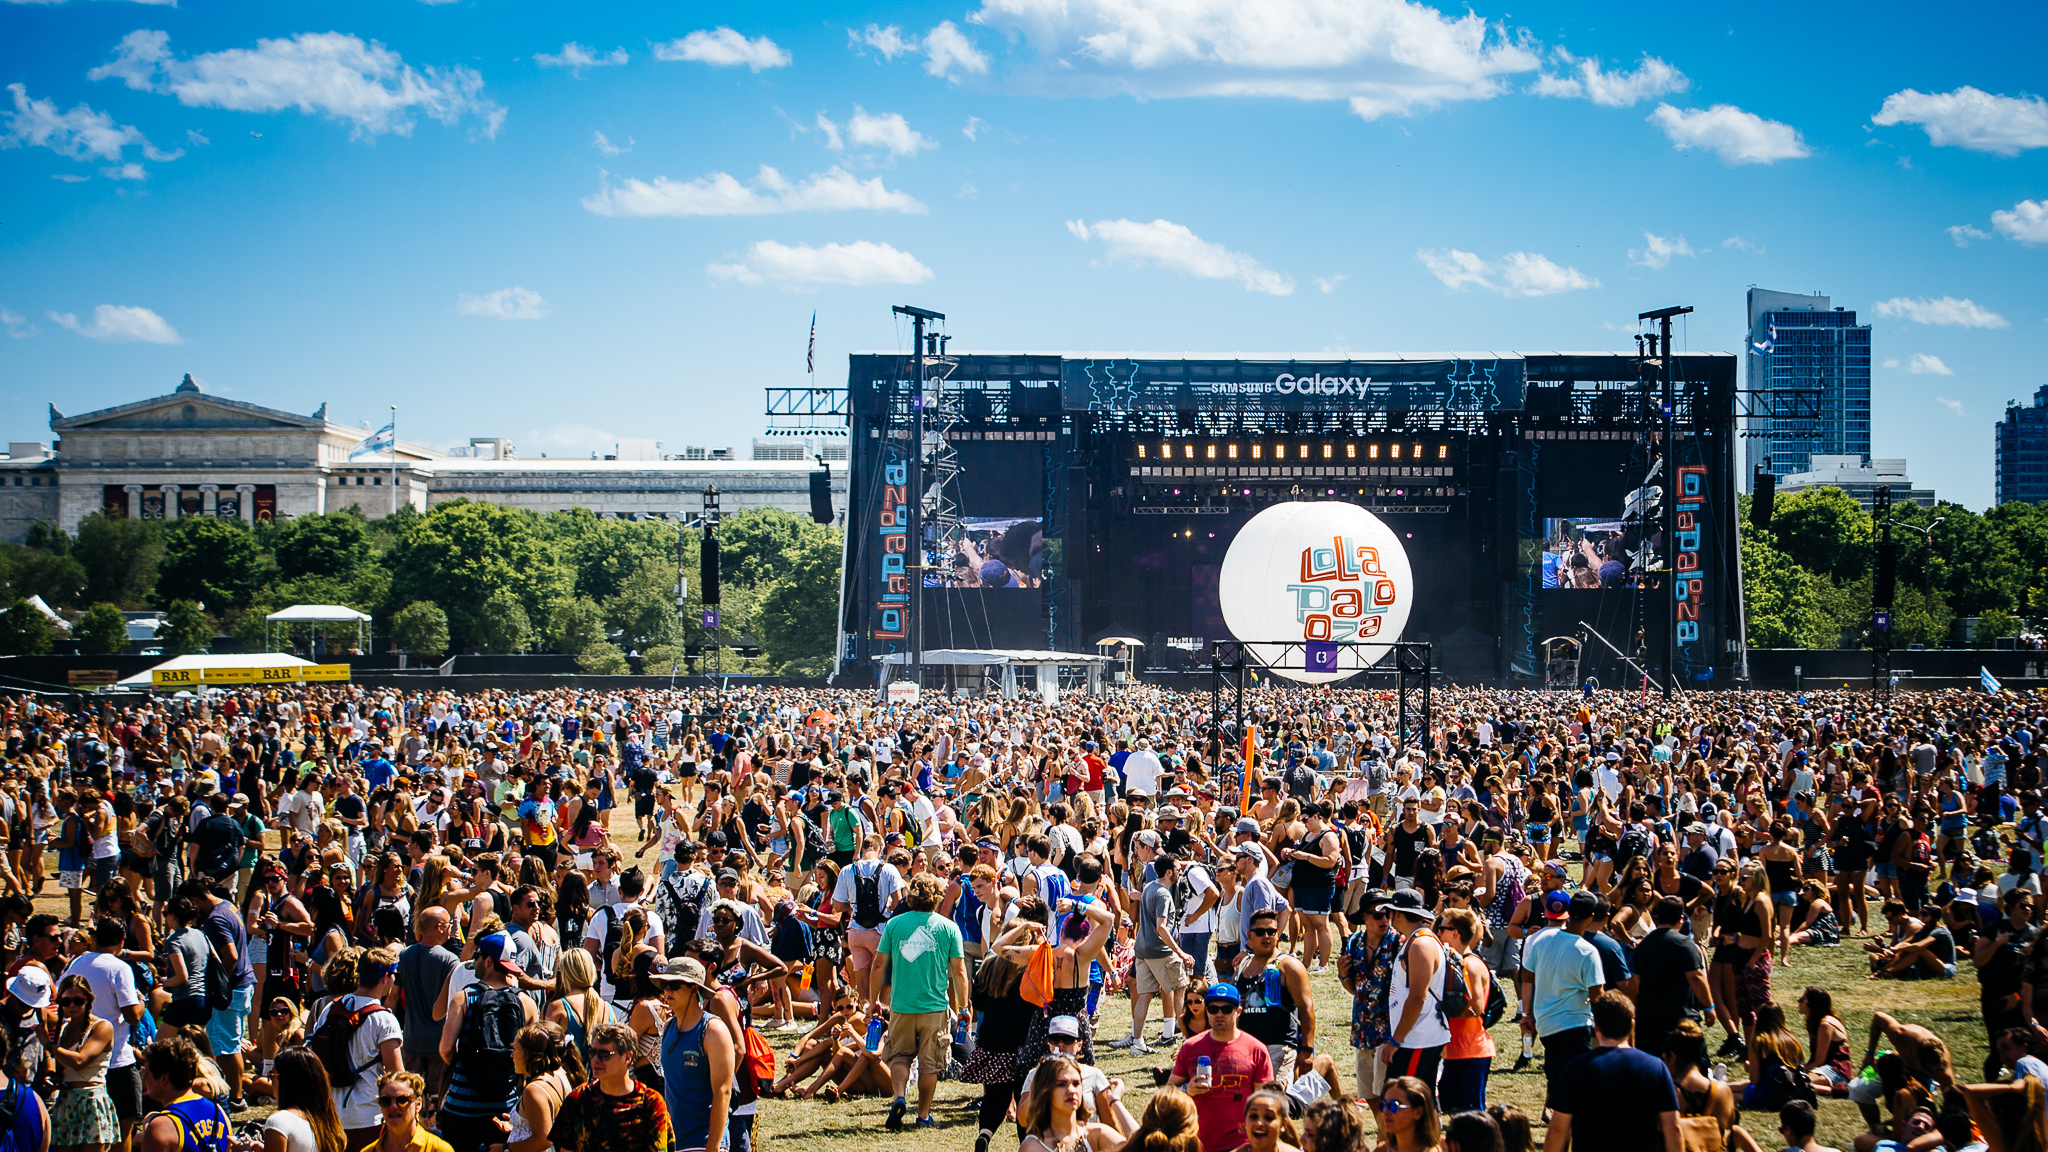 Lollapalooza announces 2016 dates